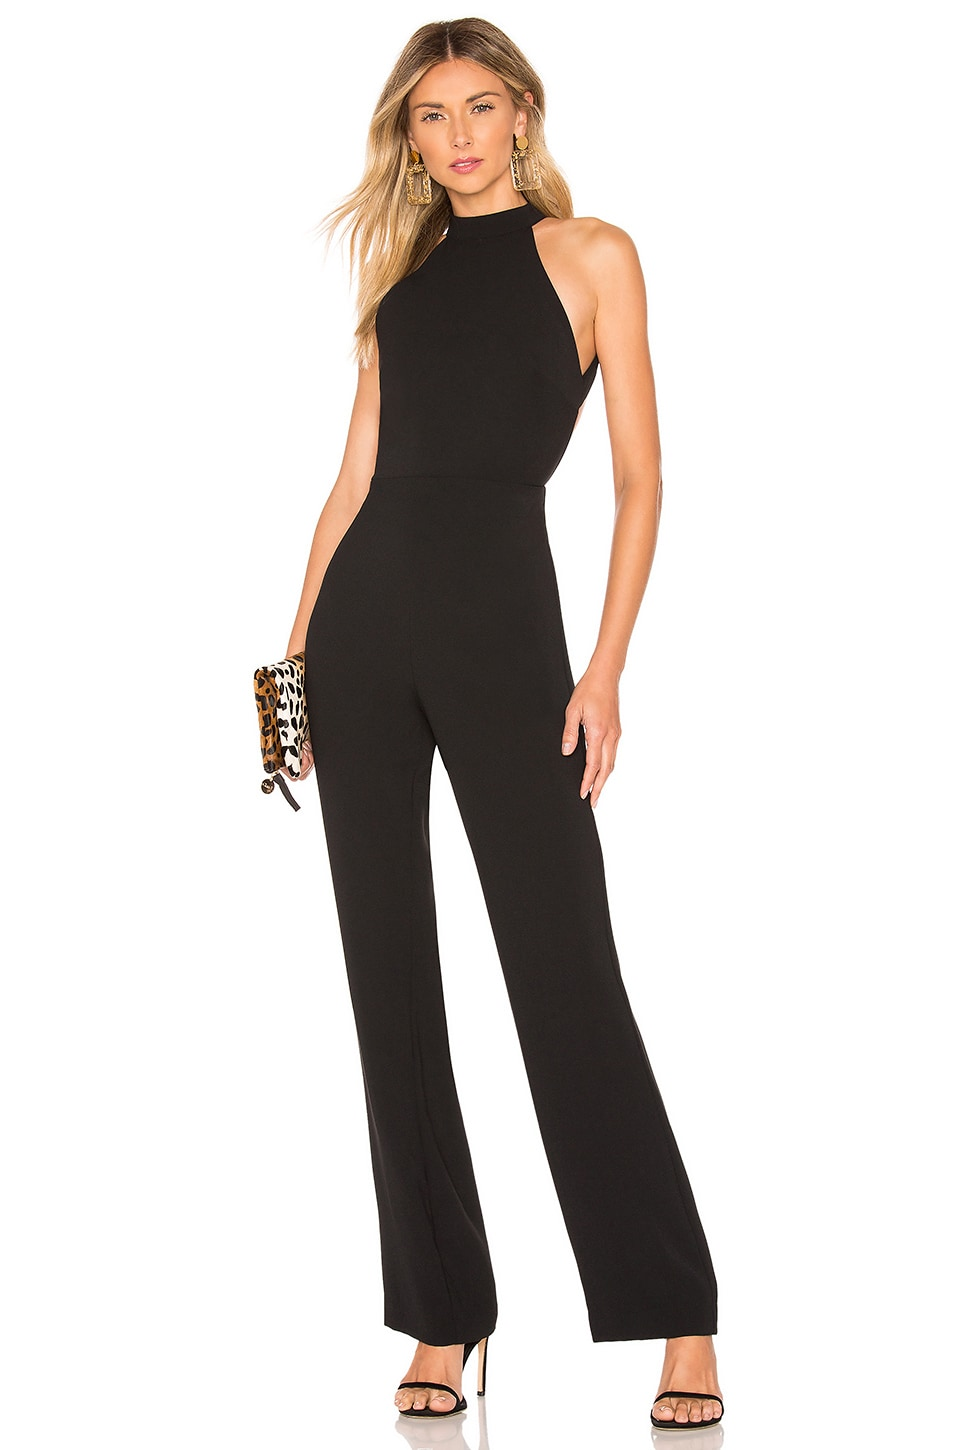 House of Harlow 1960 x REVOLVE Meant To Be Jumpsuit in Black